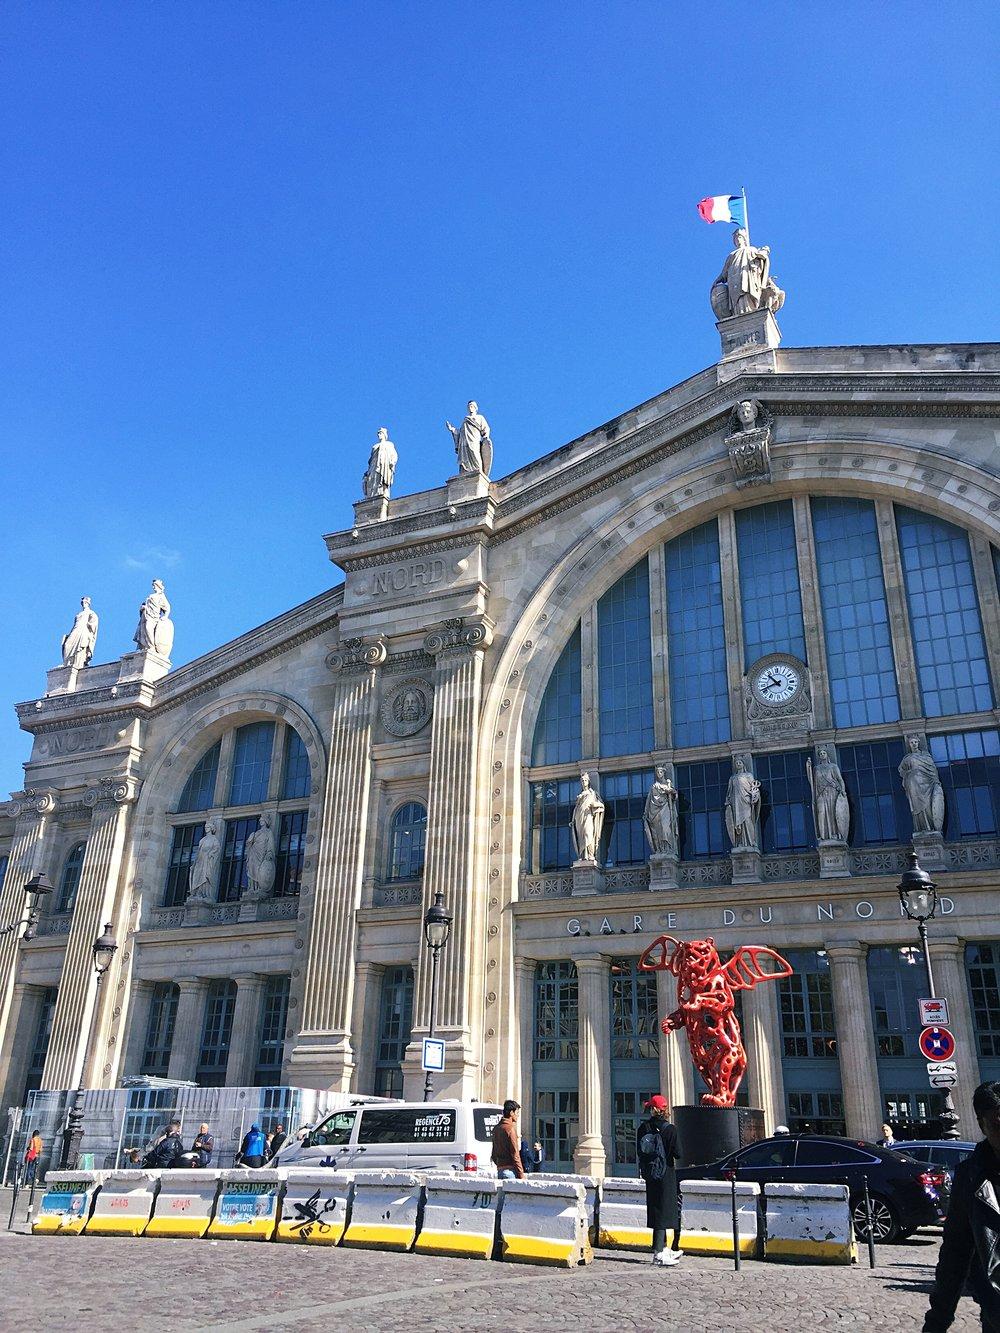 The Parisian station, Gare du Nord.